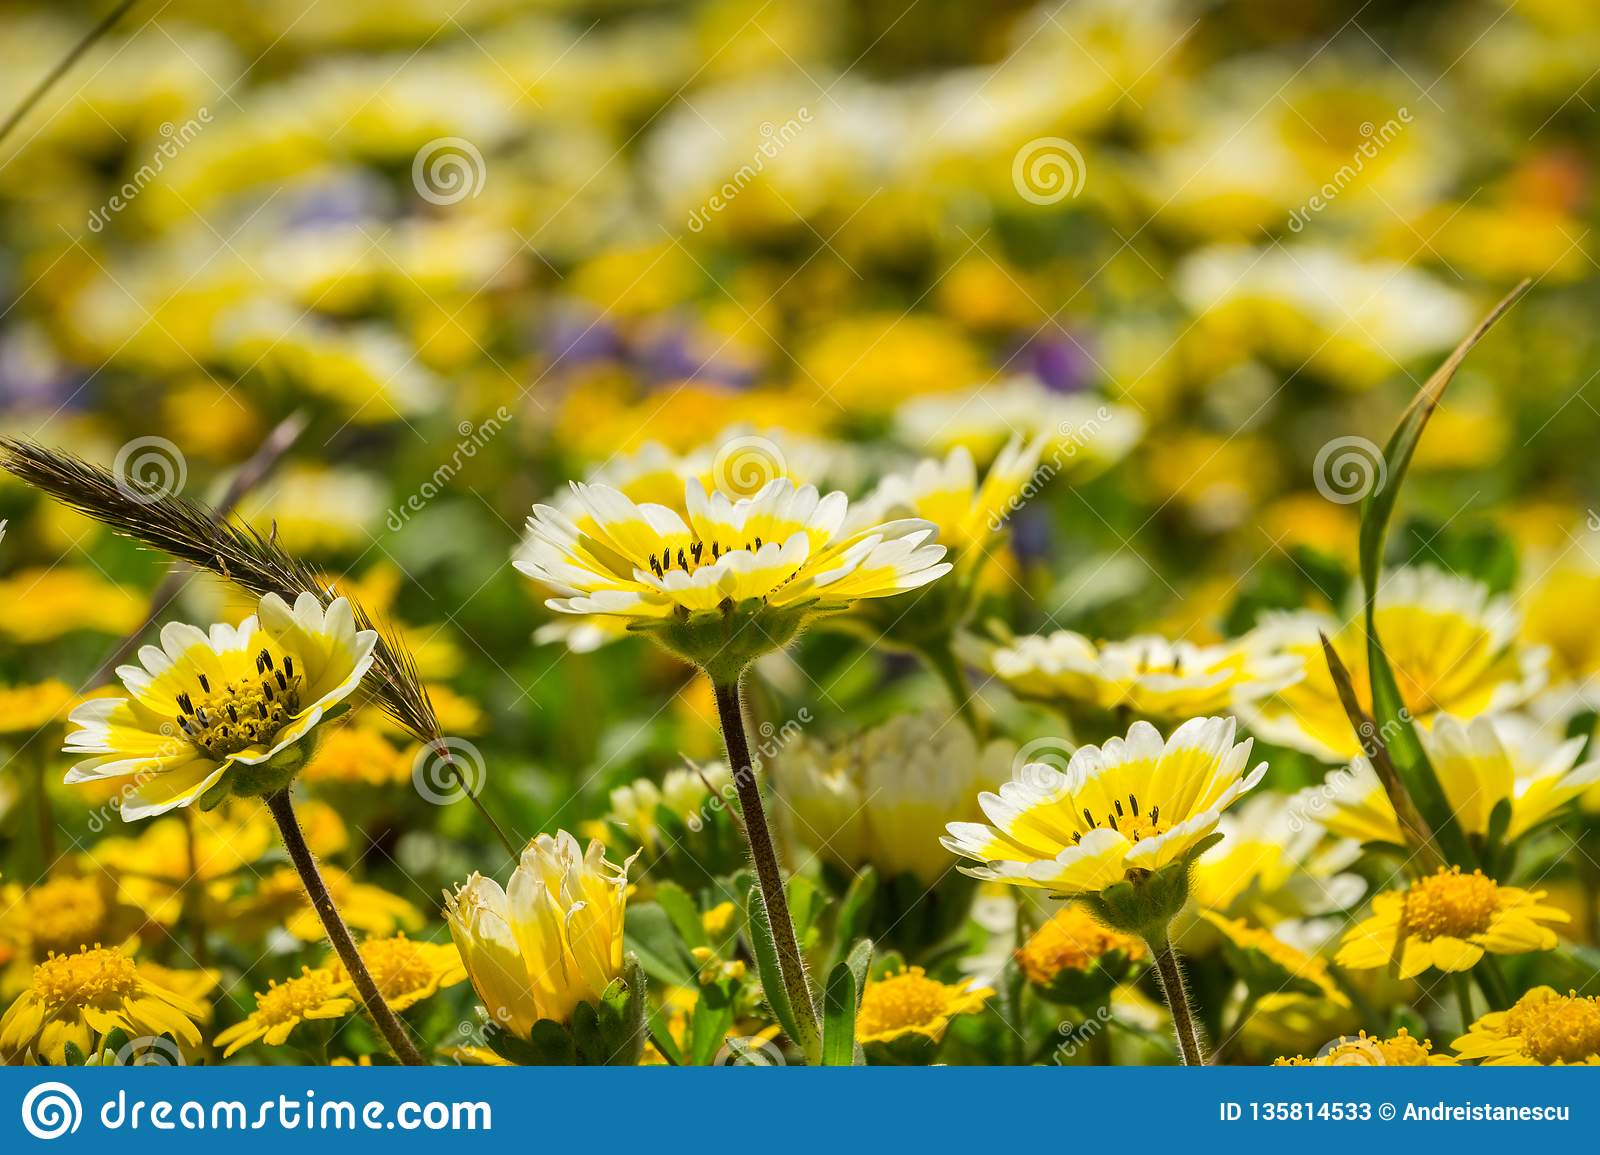 Layia platyglossa wildflowers commonly called coastal tidytips, blooming on the Pacific Ocean coast, Mori Point, Pacifica,